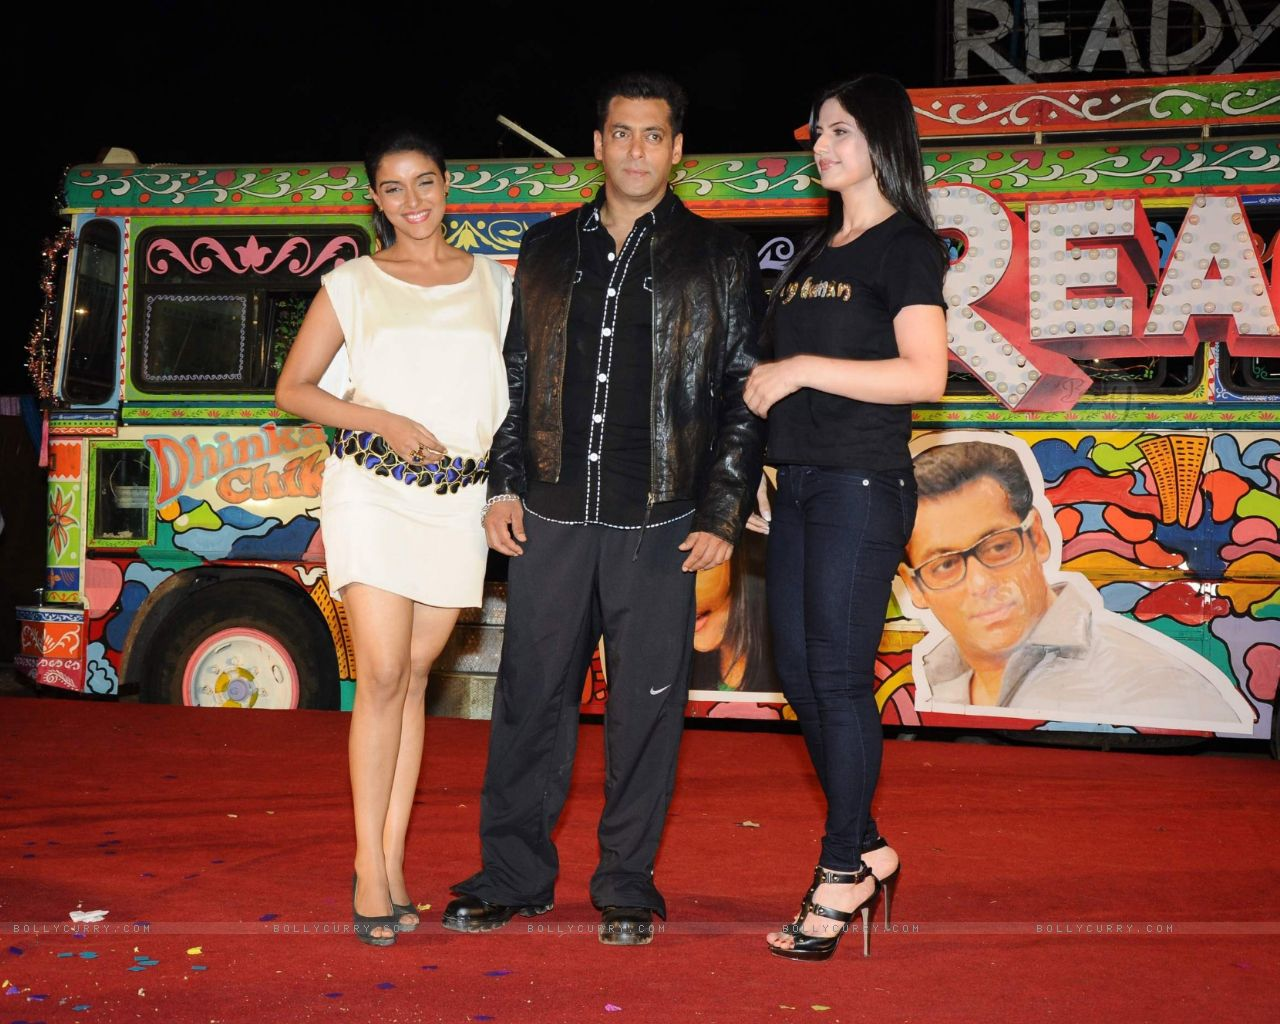 http://3.bp.blogspot.com/-W0Yy9_IleKs/ThPp_2mw0II/AAAAAAAAAYE/5YaznZYVz3k/s1600/131848-salman-khan-with-asin-and-zarine-at-ready-music-launch-at-film.jpg